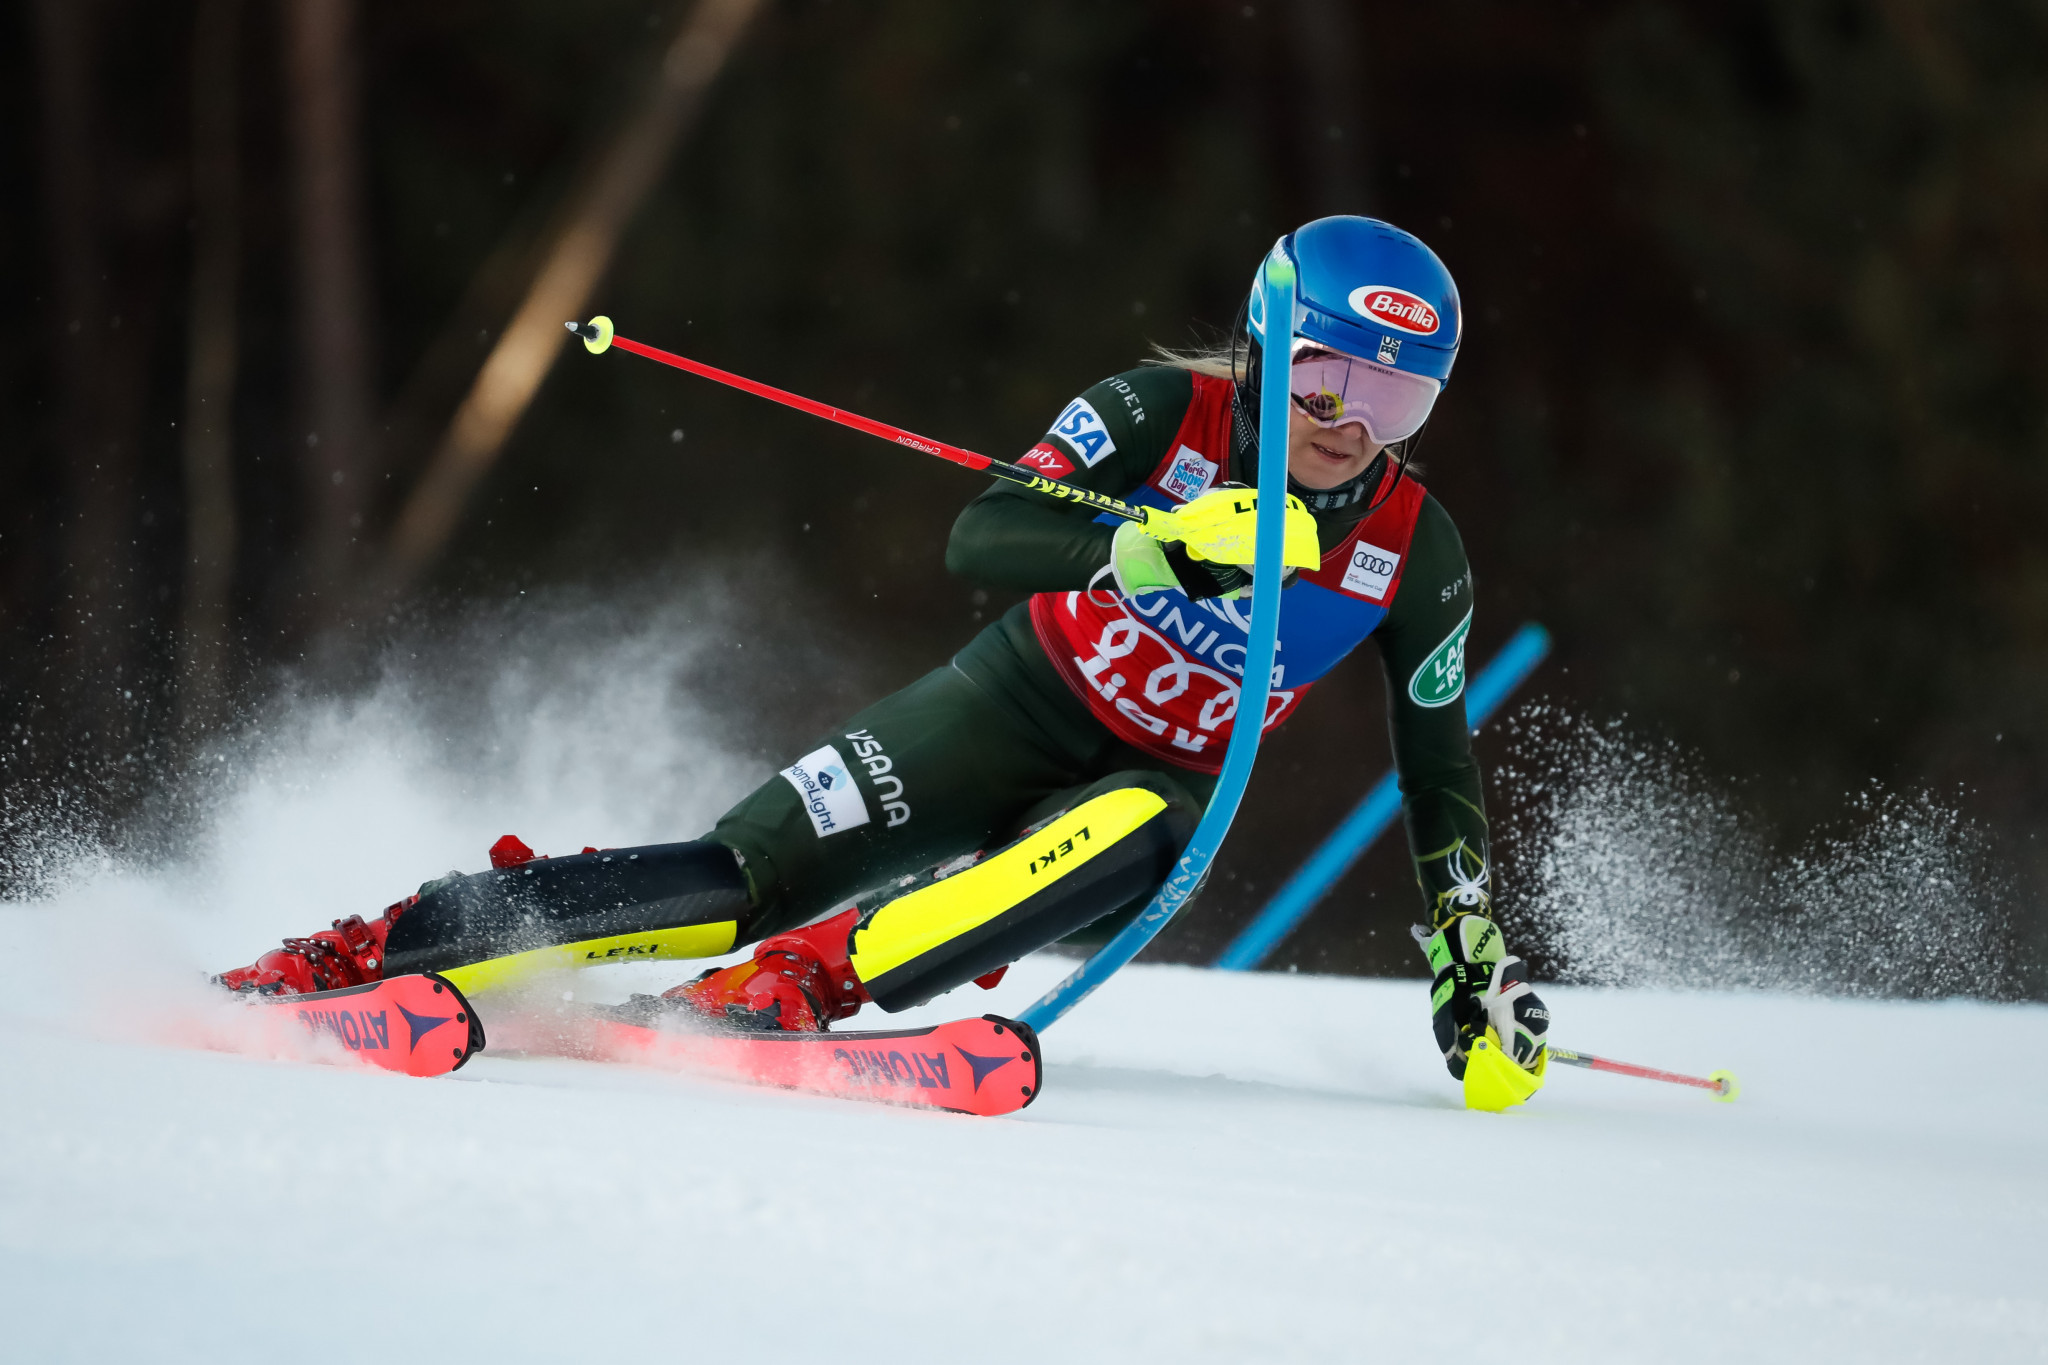 Shiffrin set for competitive return at Levi Alpine Ski World Cup slalom races